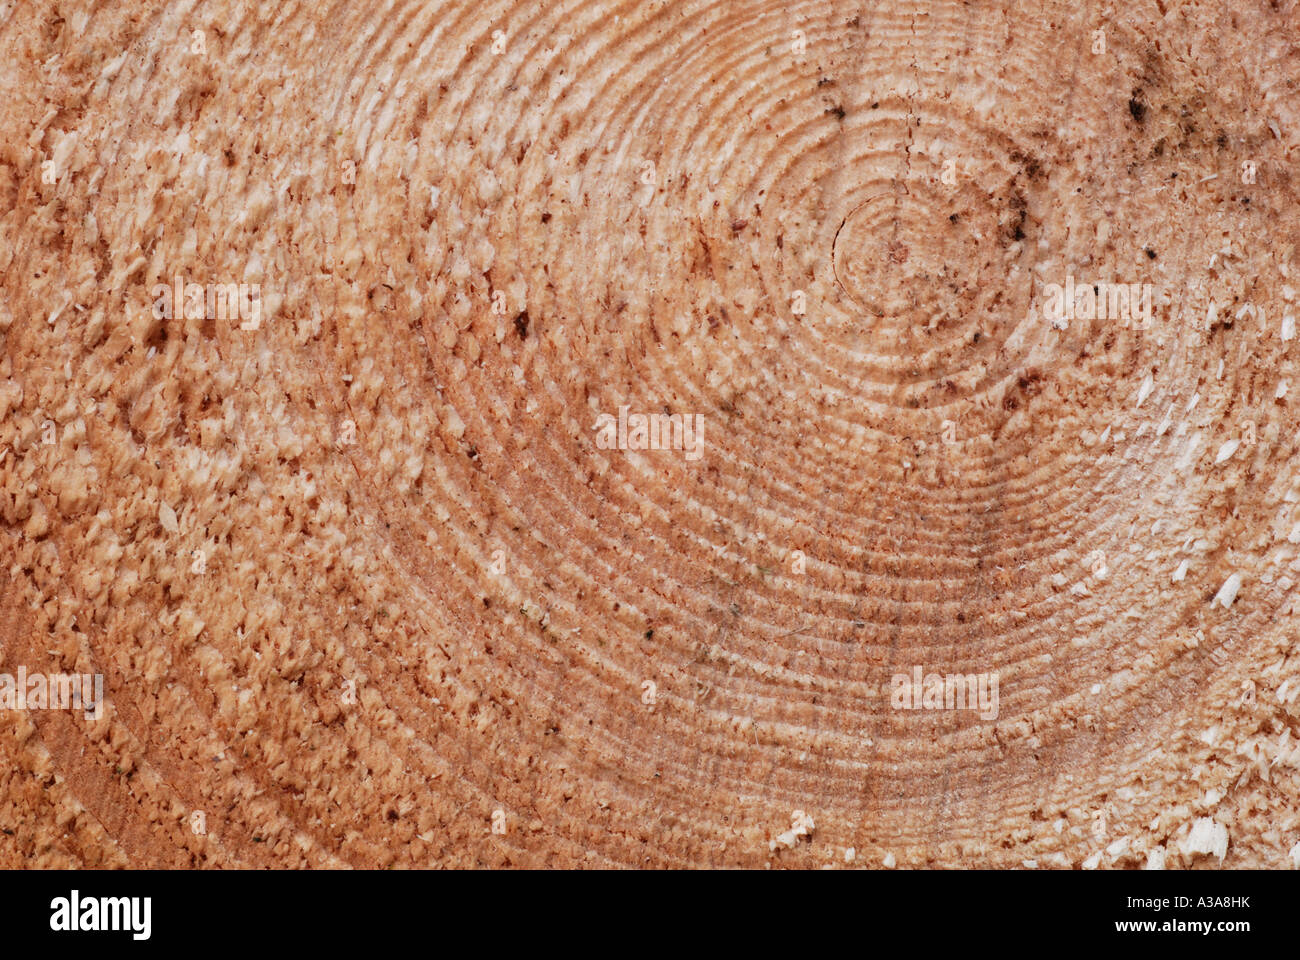 norway-spruce-picea-abies-growth-rings-A